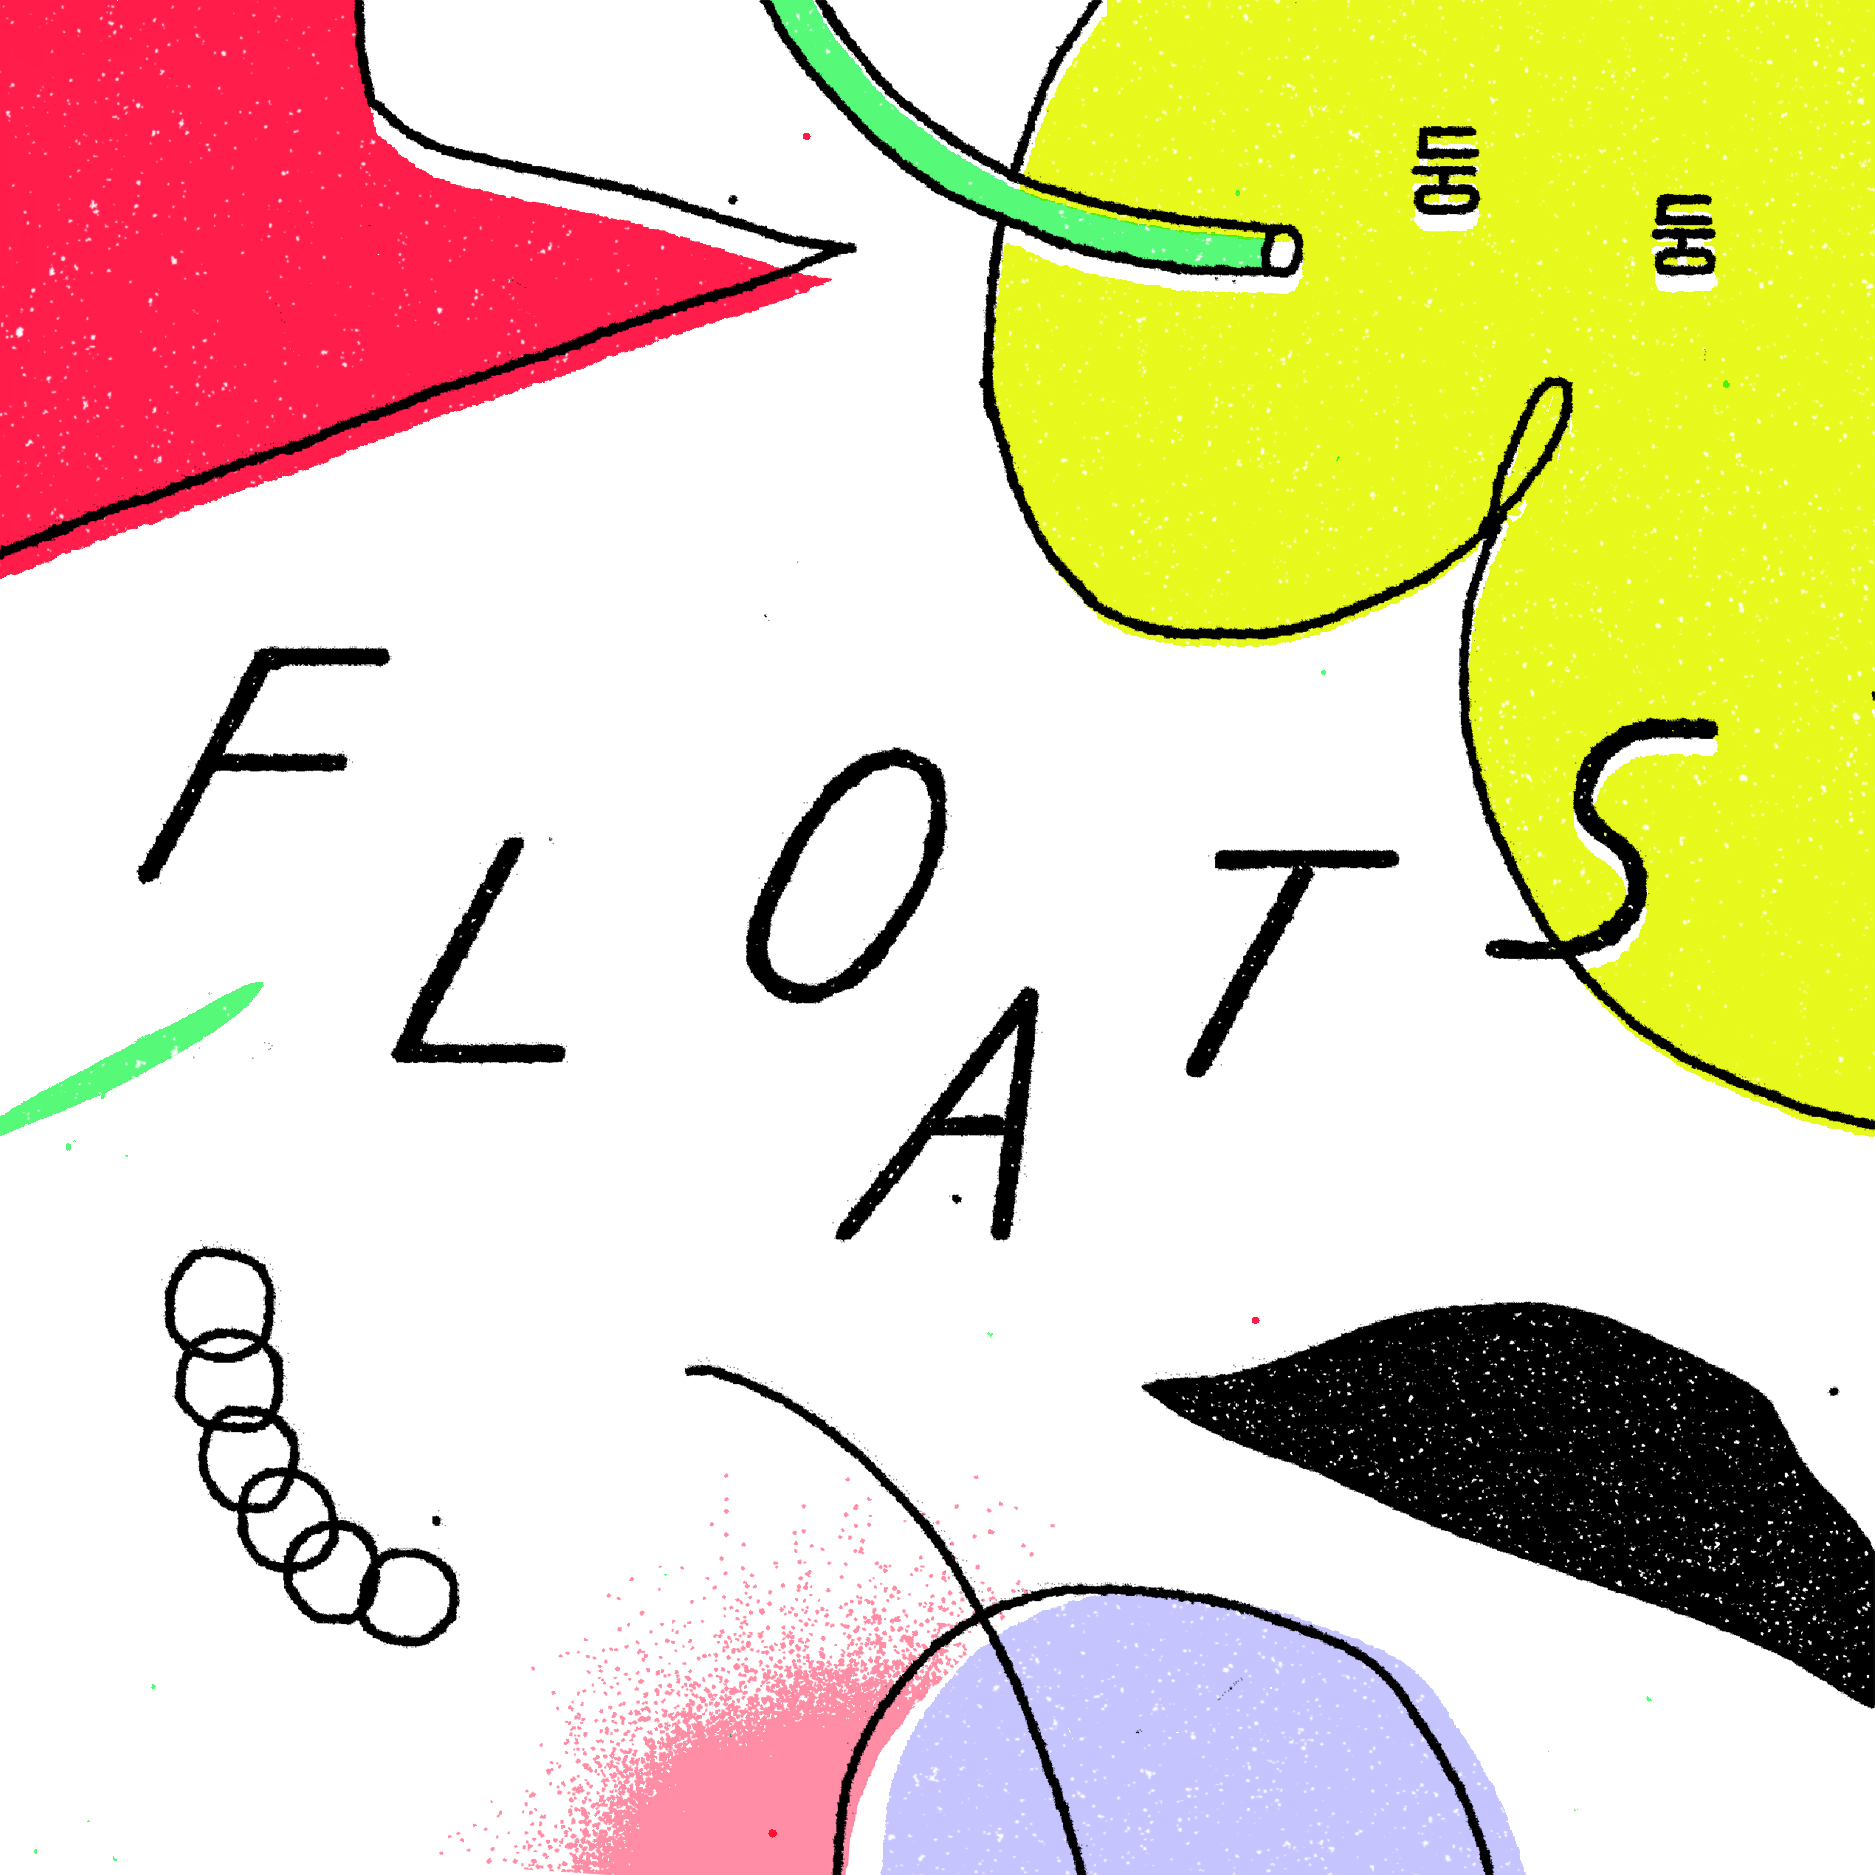 floats_cover.jpg